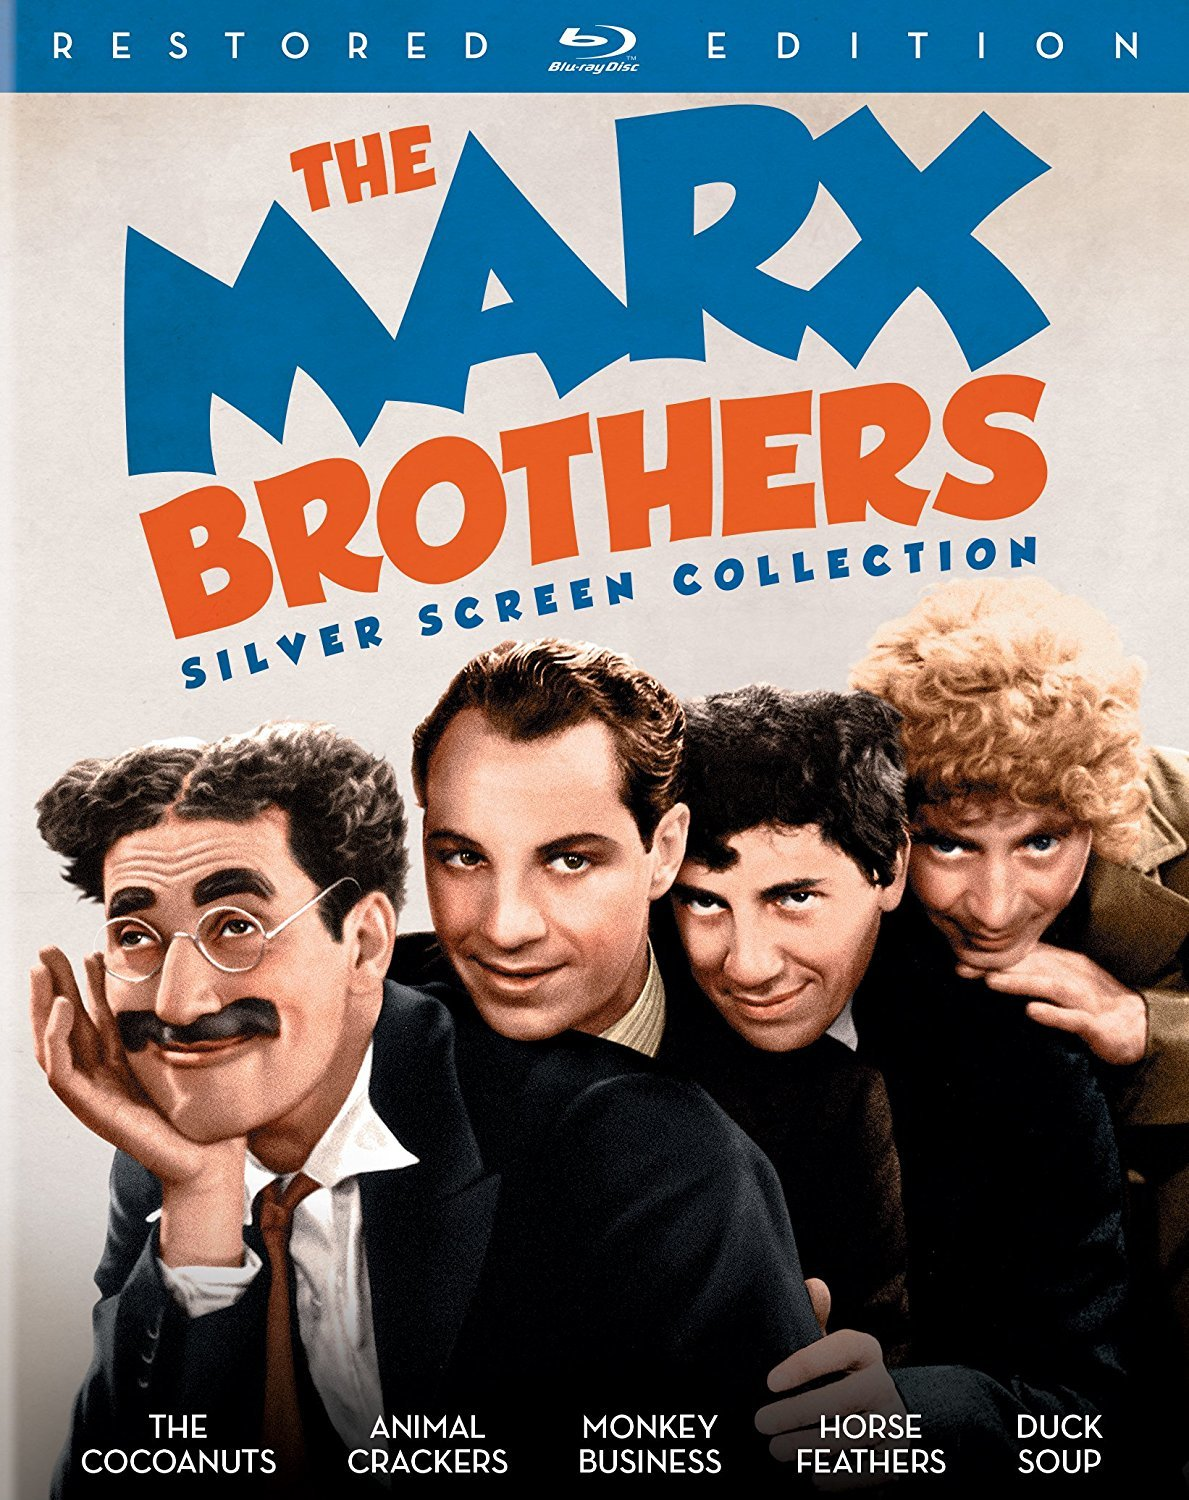 The Marx Brothers Silver Screen Collection (Restored Edition)(1929-1933) Blu-ray